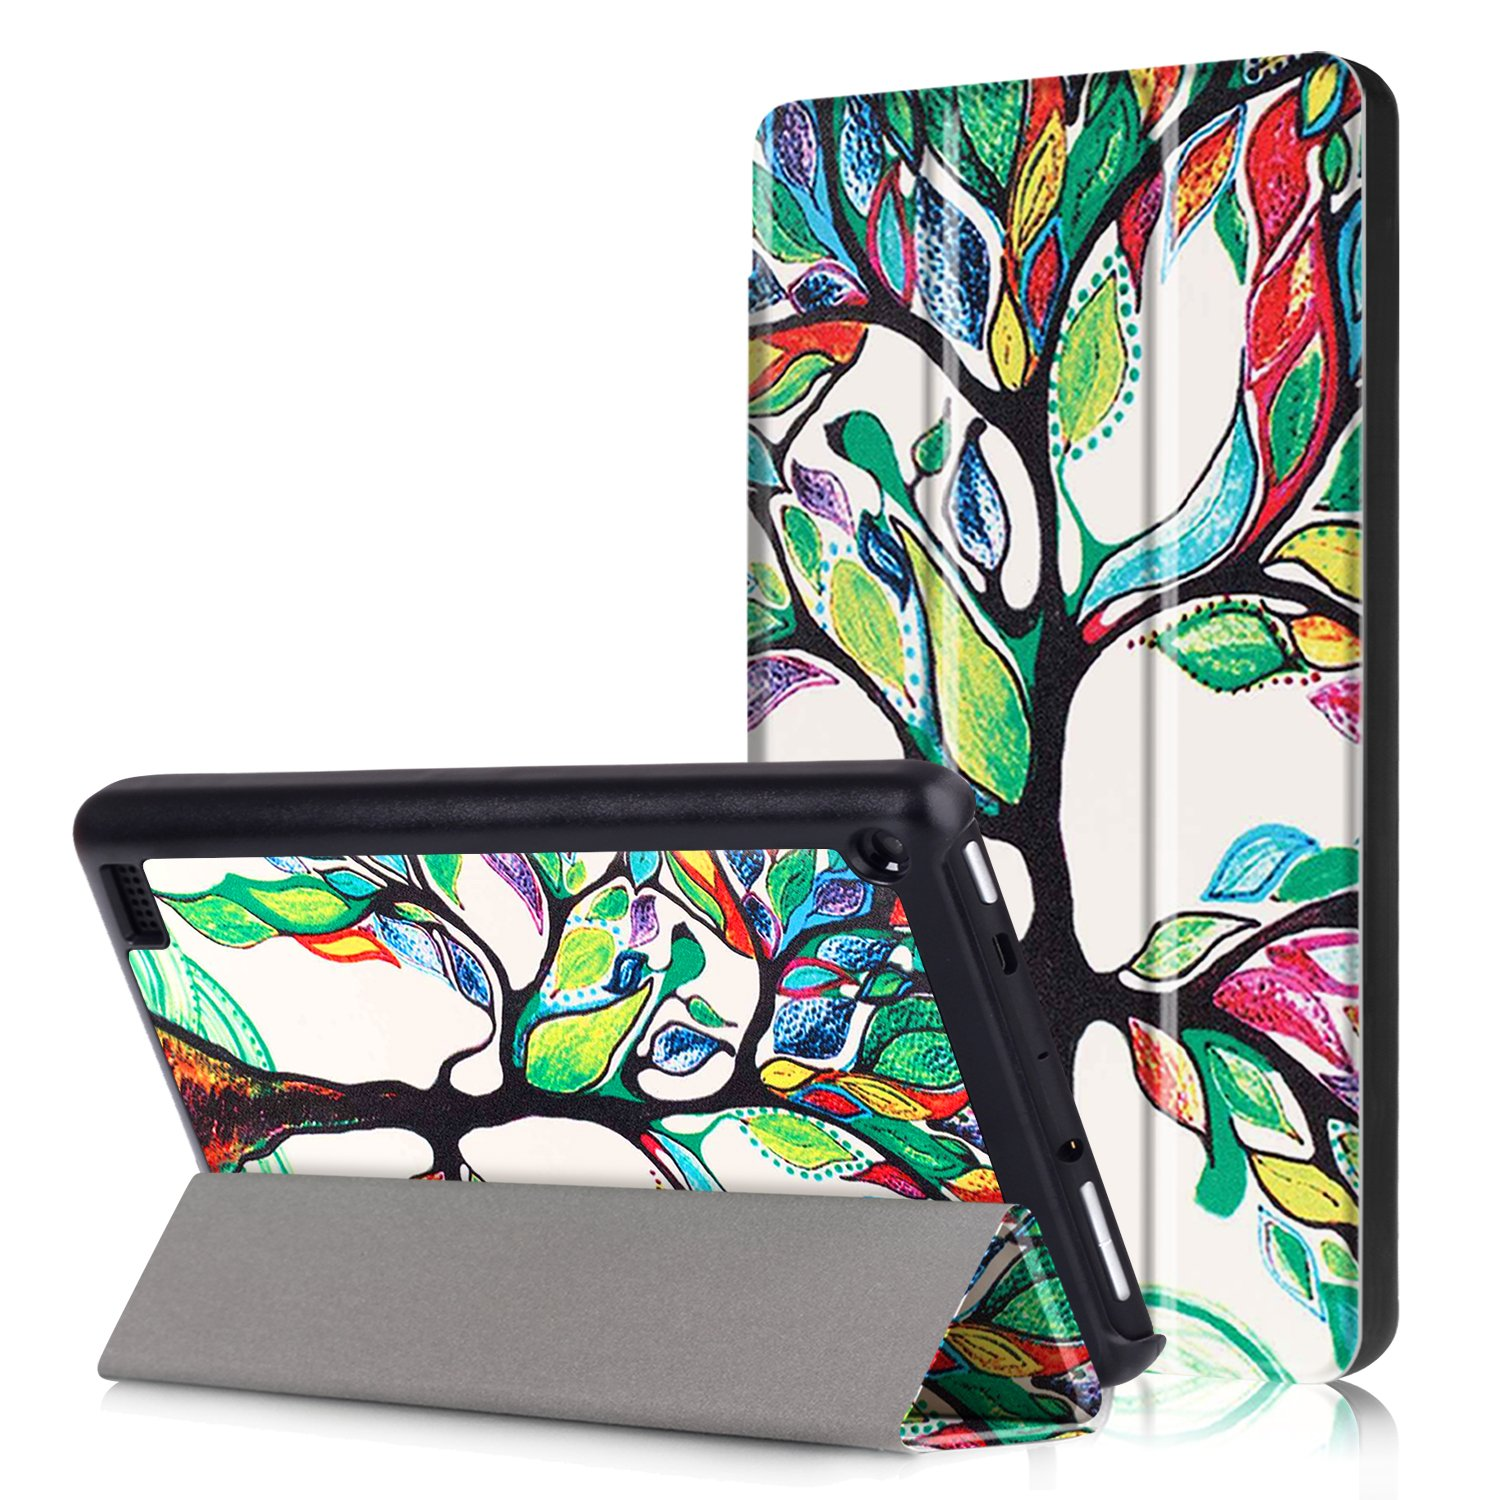 Case for All-New Amazon Fire 7 Tablet (2017 7th Generation), SAVYOU Painted Lightweight Slim Pu Leather Stand Protective Shell Cover for Fire 7 Tablet (7th Generation, 2017 Release)